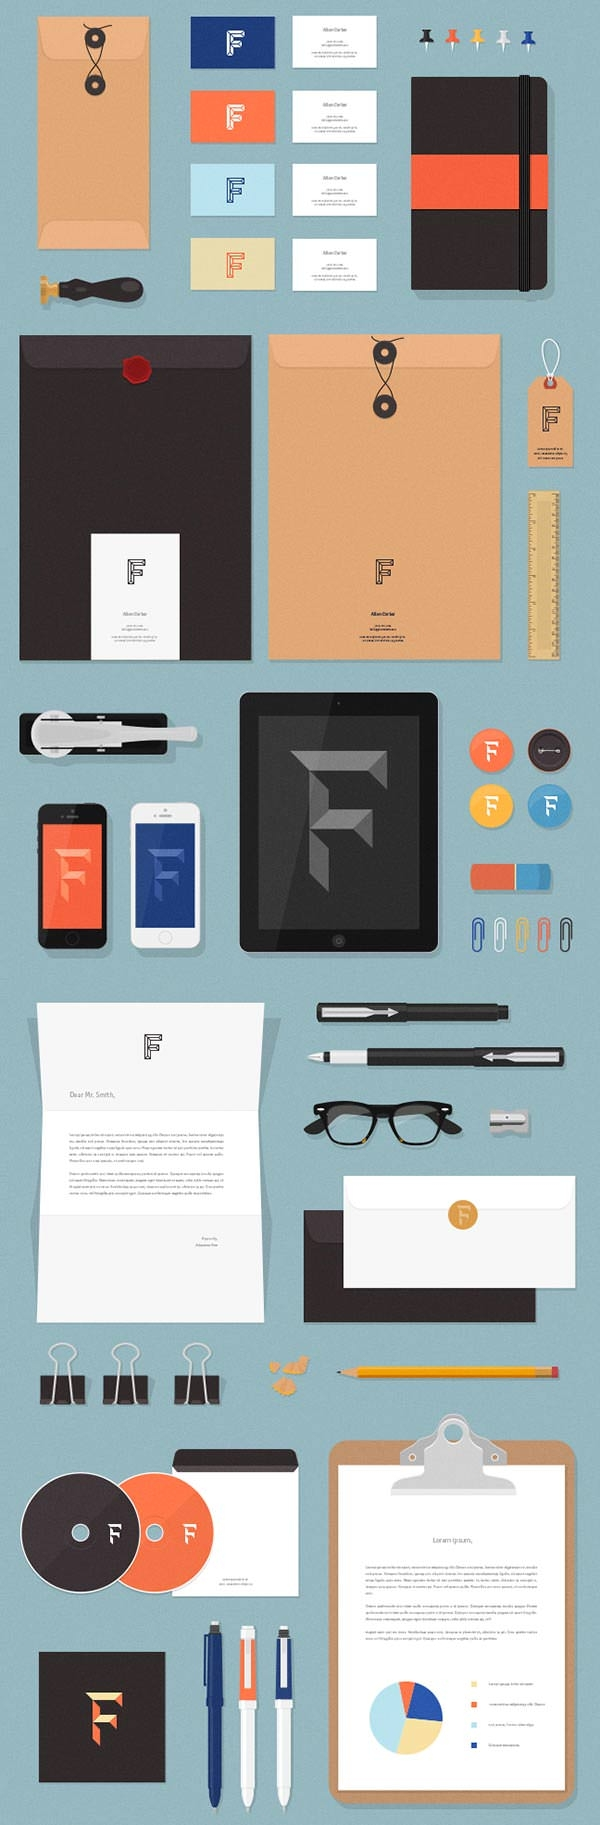 Realistic-Corporate-Branding-Stationery-Mockup-Free-PSD